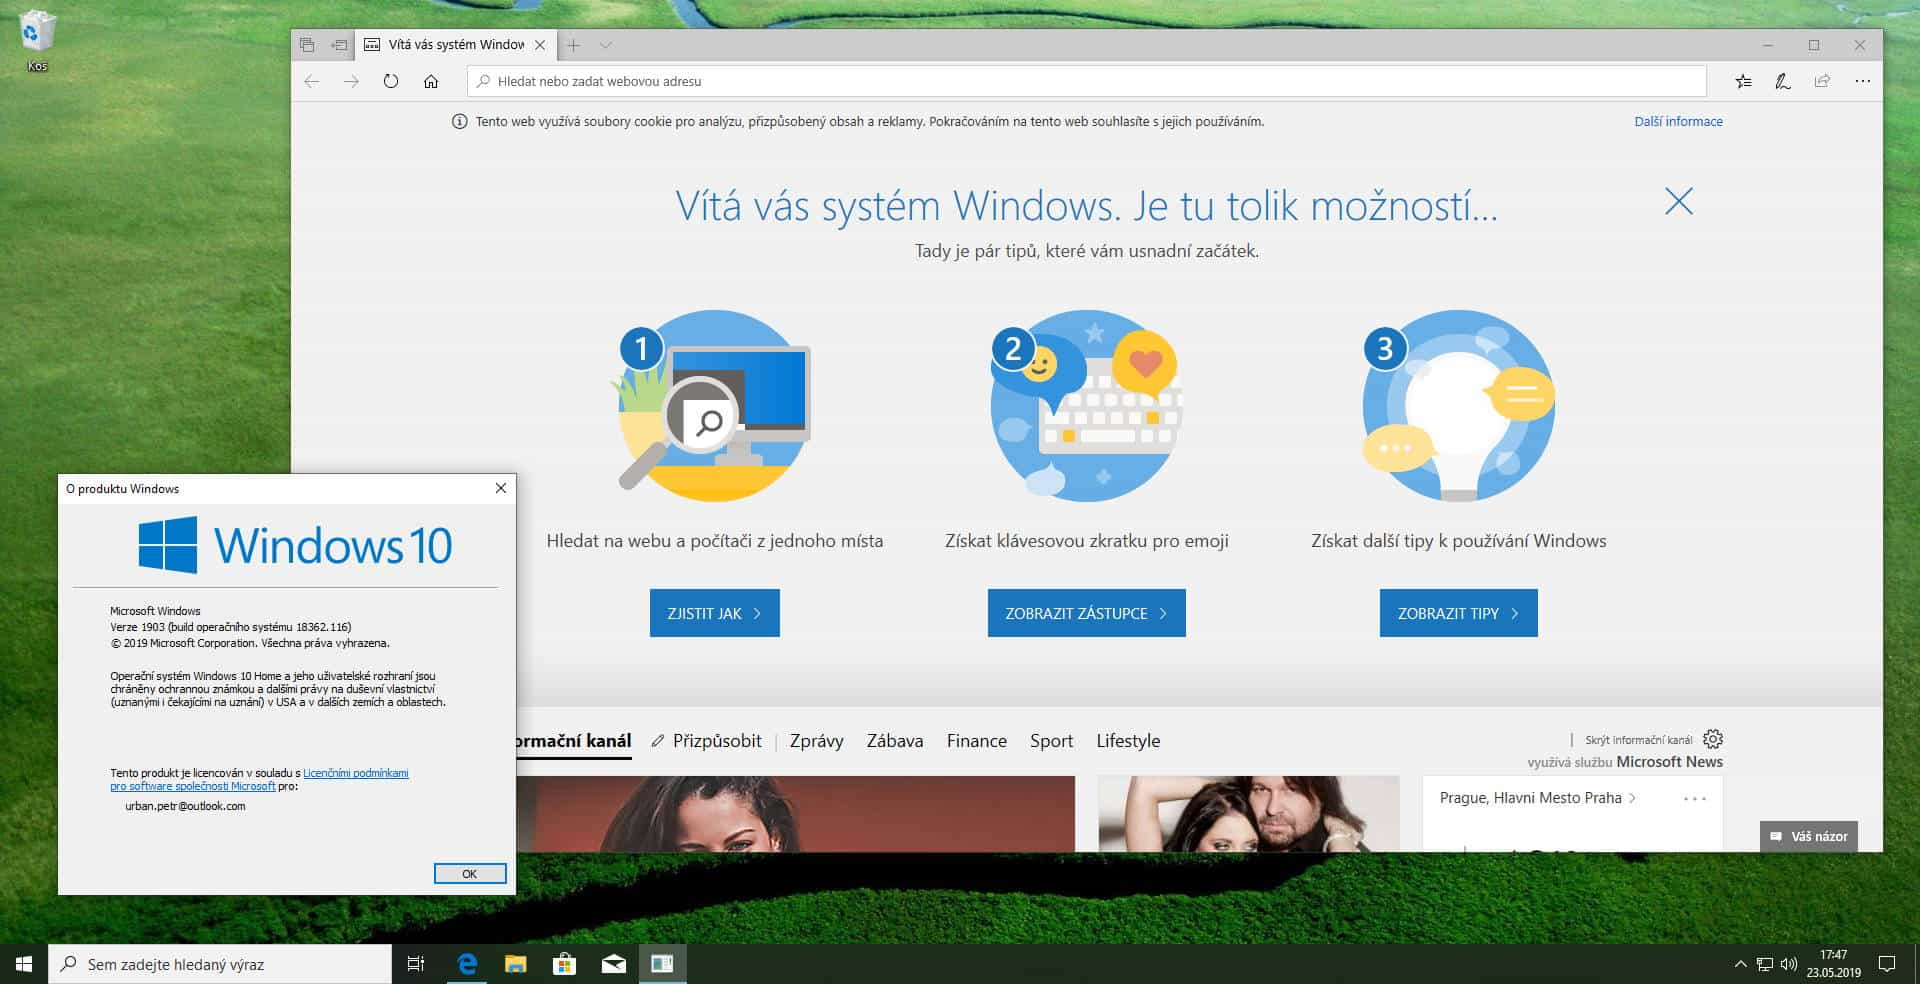 upgrade nabidka windows 10 verze 1903 8